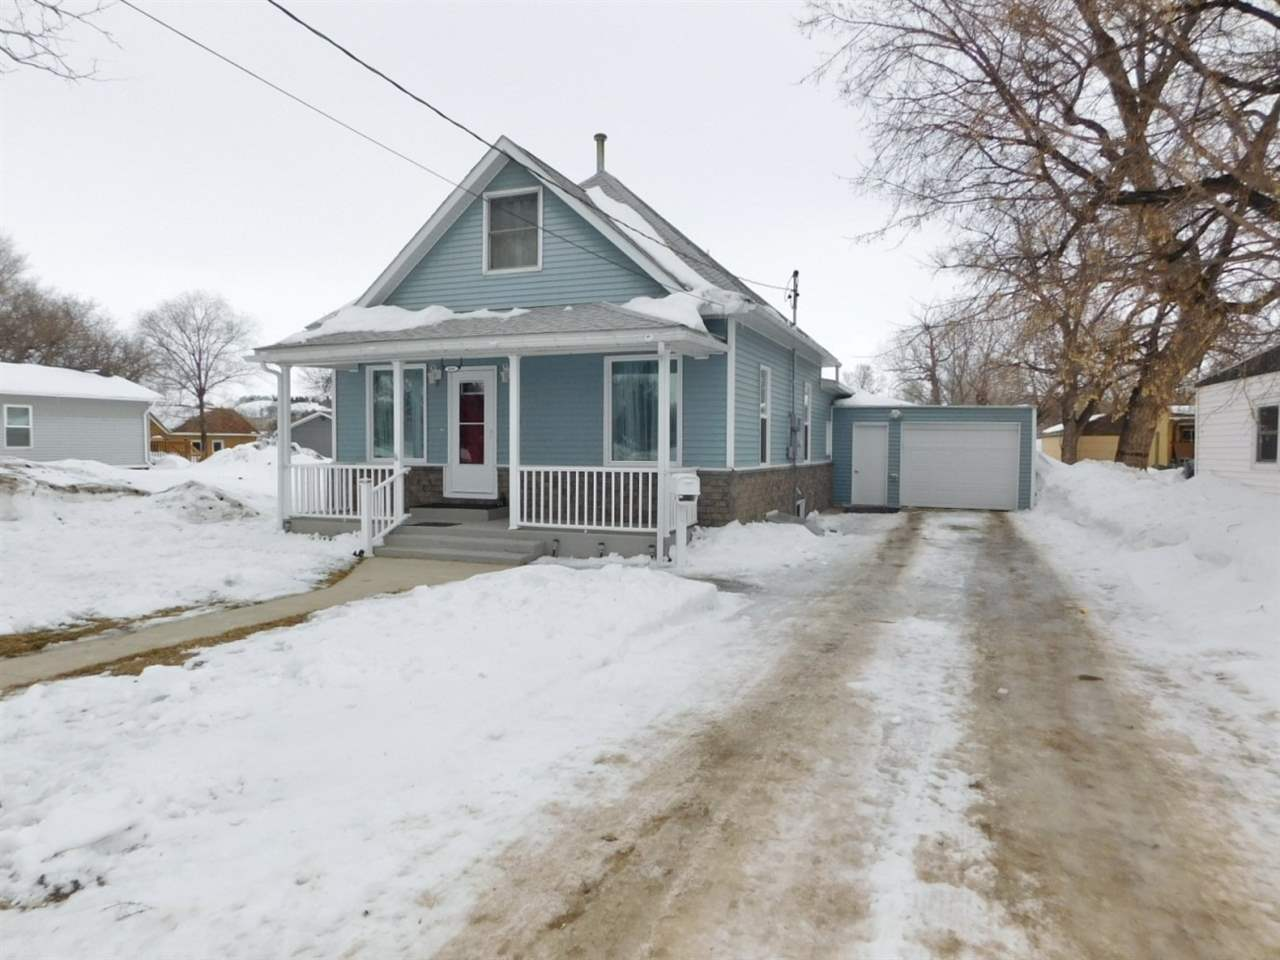 408 5th Ave NW, Minot, ND 58703